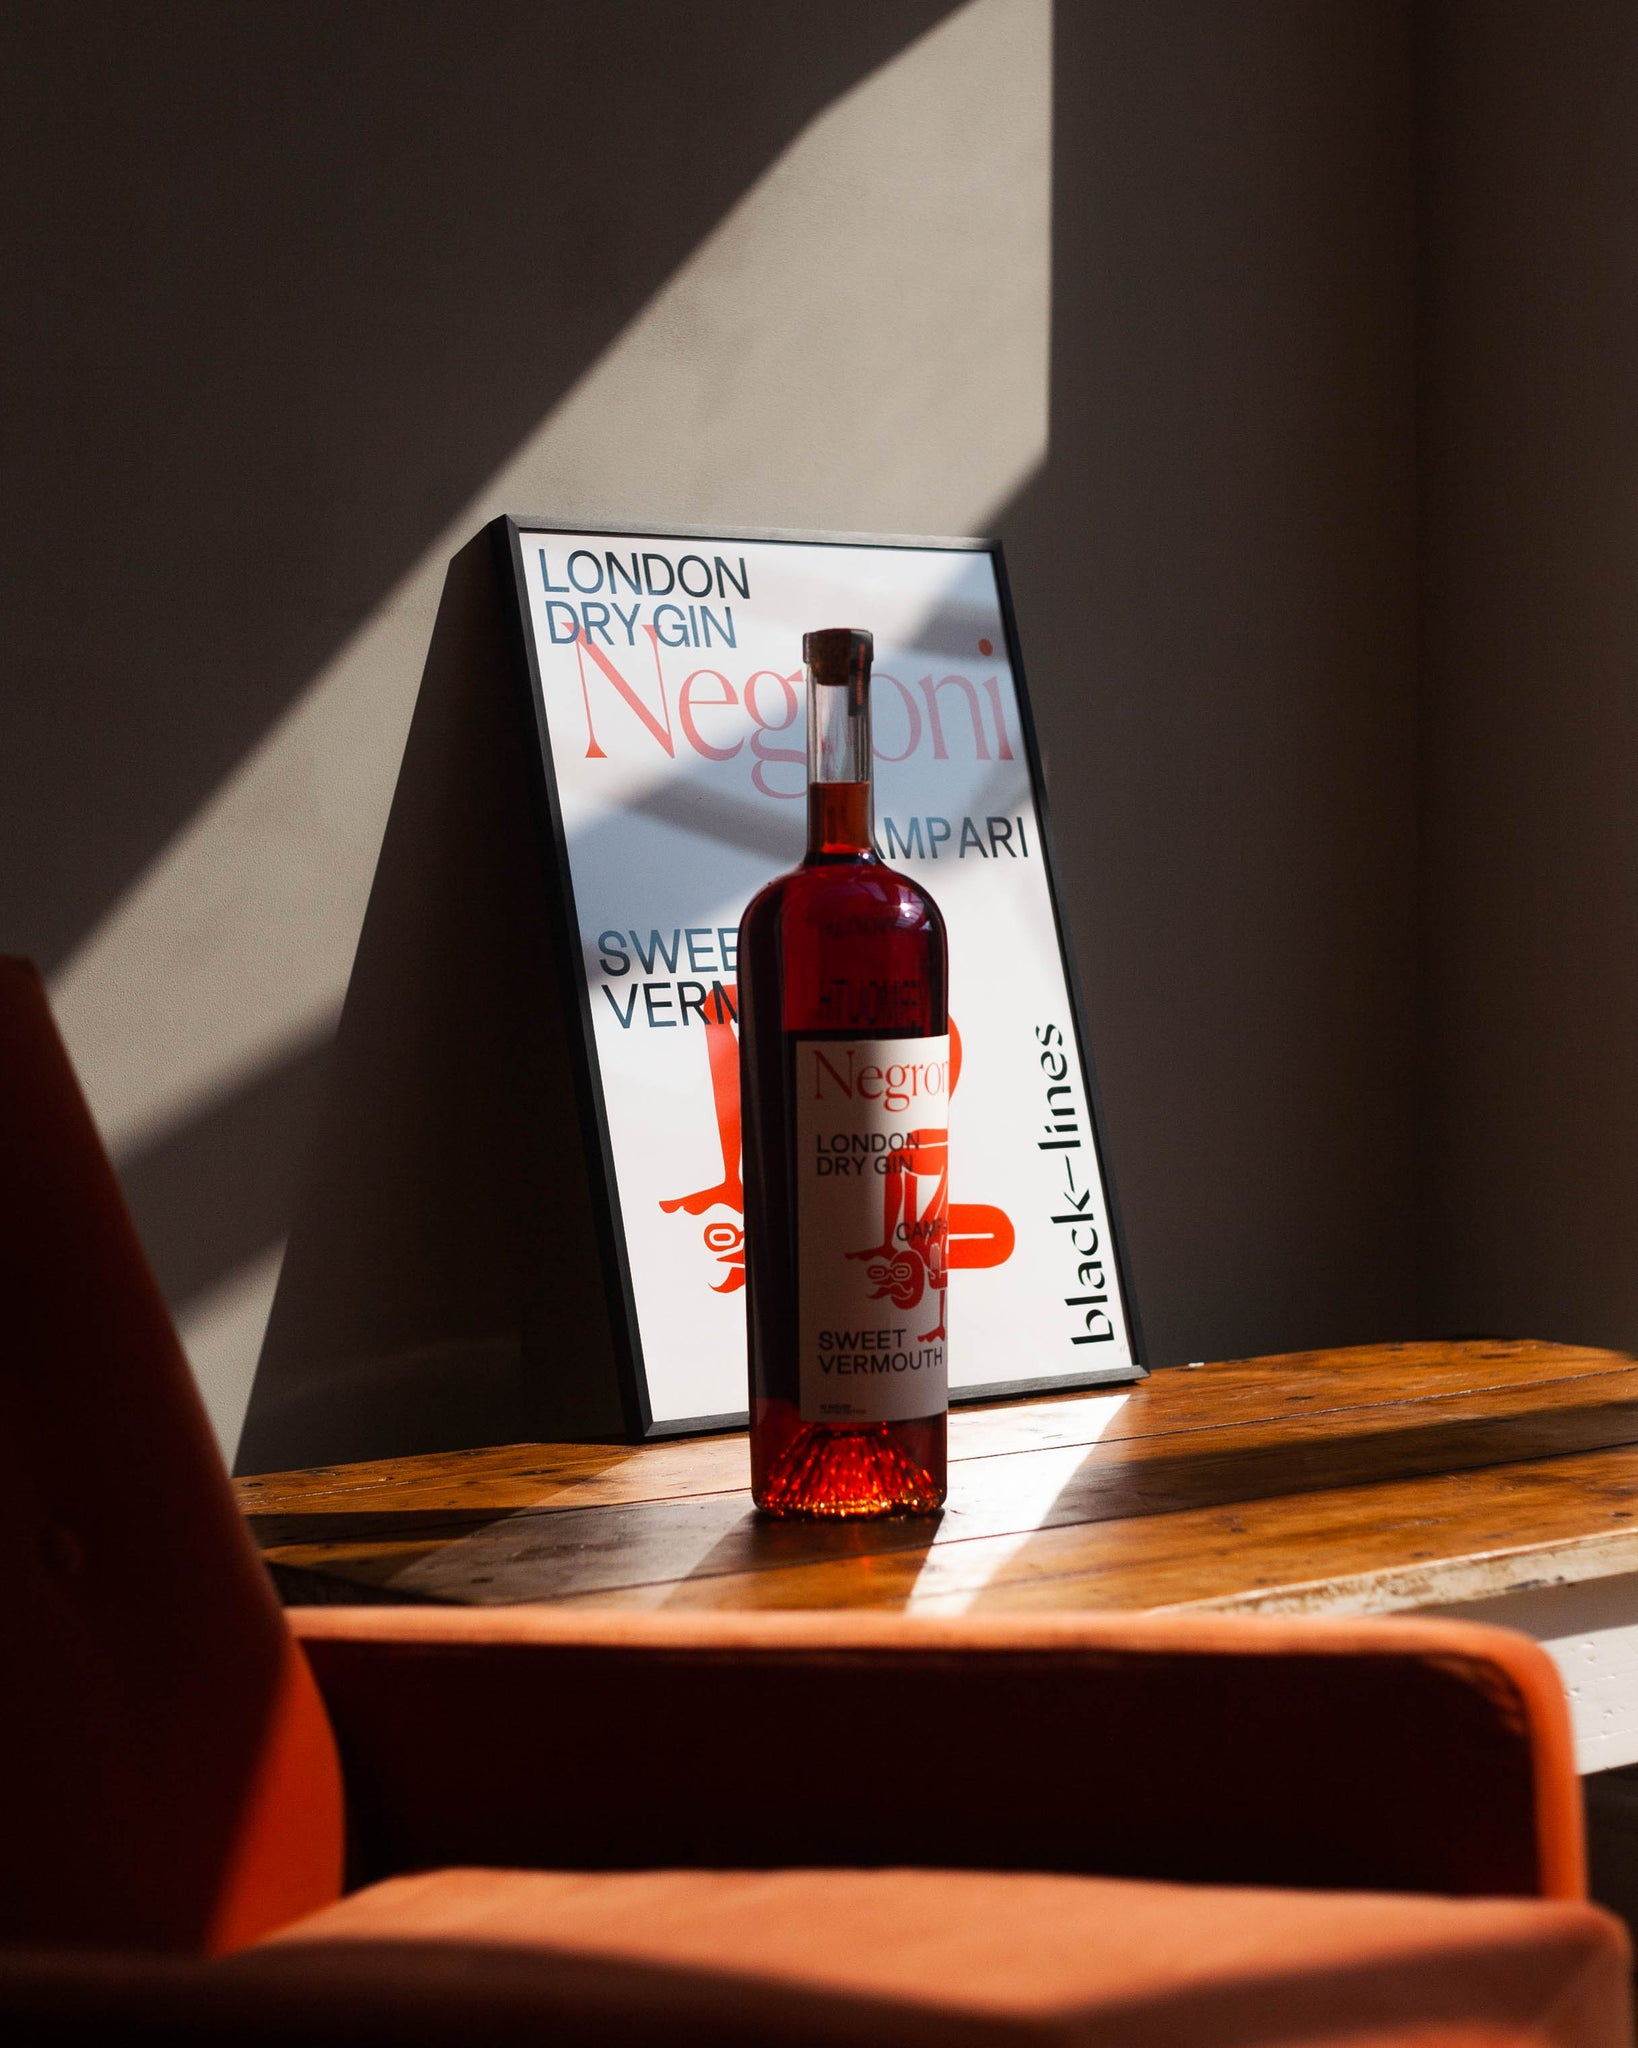 Jeroboam of Negroni - Limited Edition